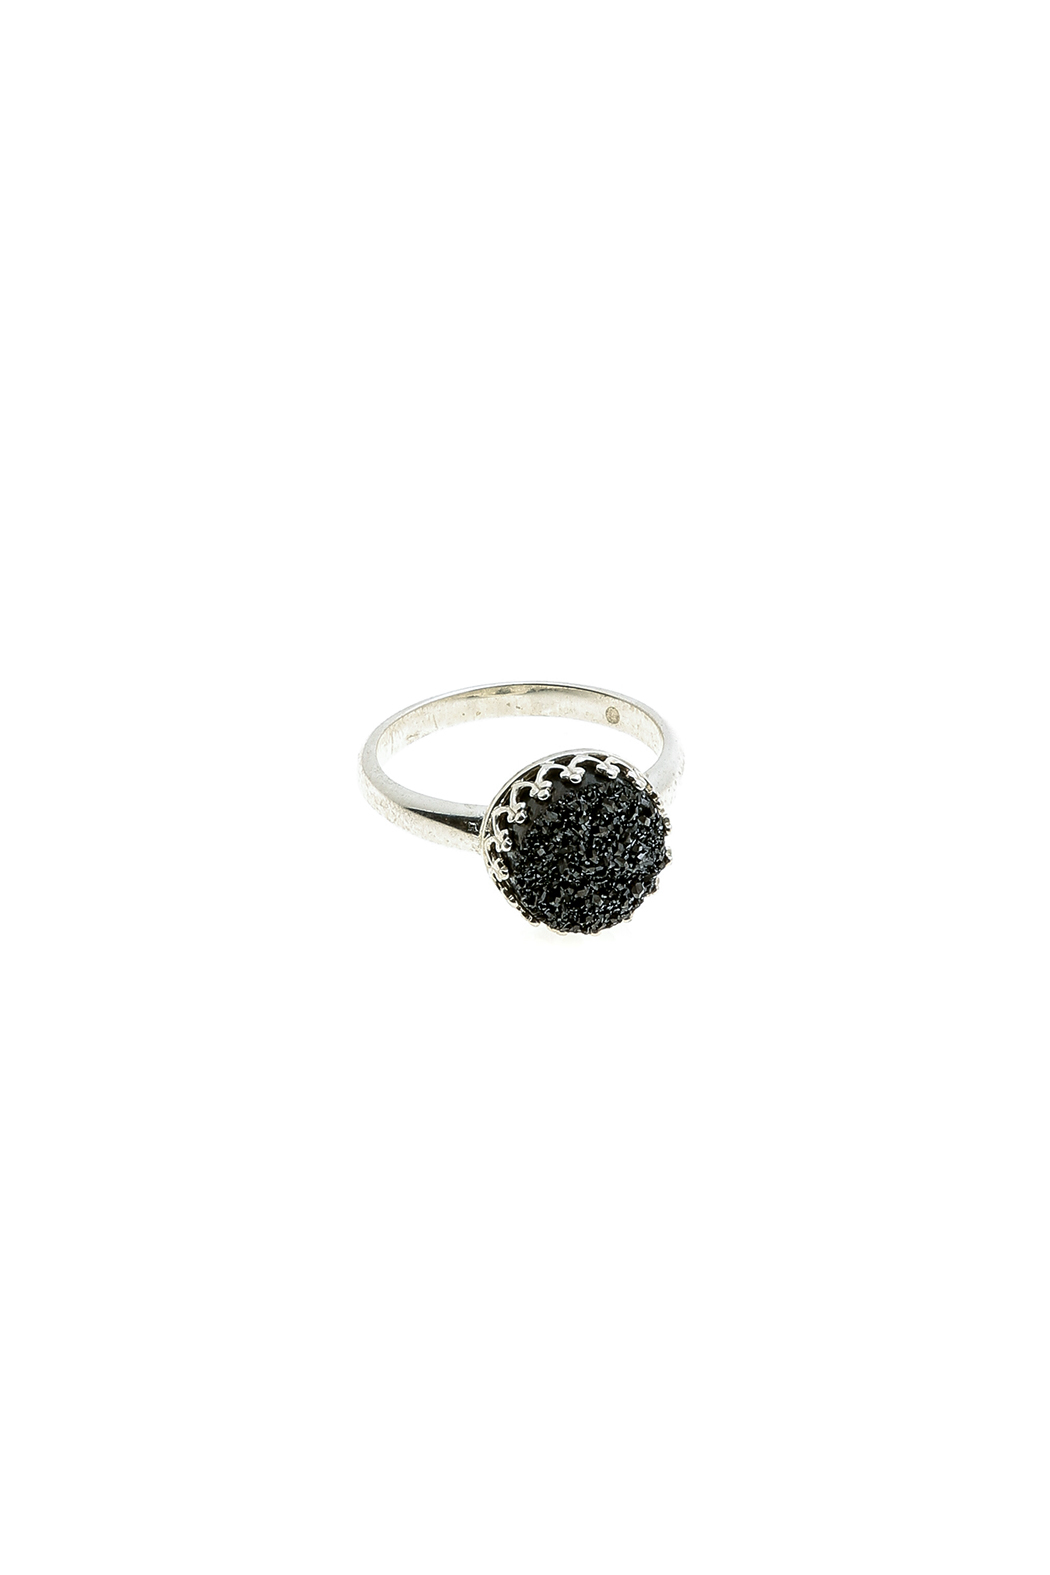 Victoria Greenhood Jewelry Design Black Druzy Ring - Main Image